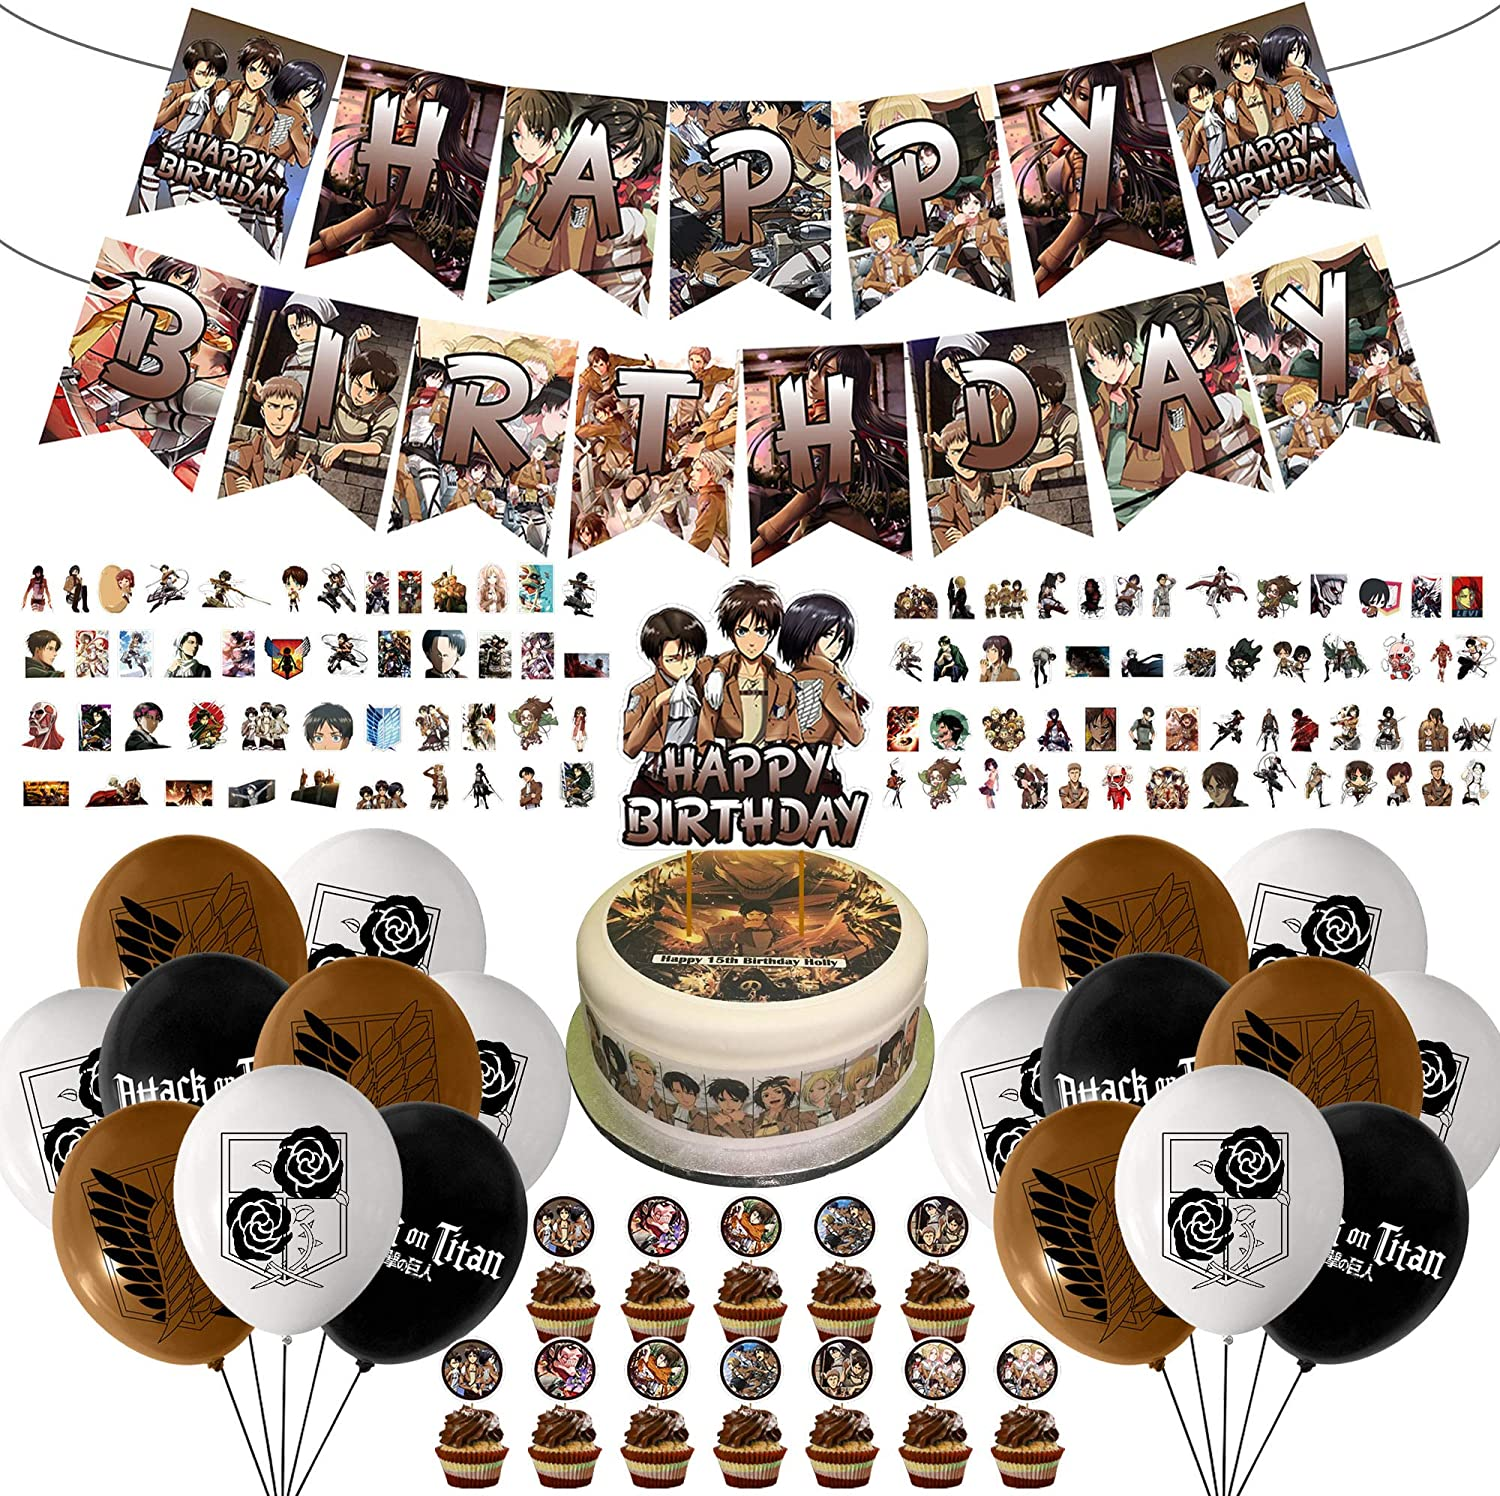 138 Pcs Attack on Titan Party Decoration, Happy Birthday Banner Cupcake Toppers Balloons Anime Stickers Theme Birthday Supplies Kids Birthday Decor